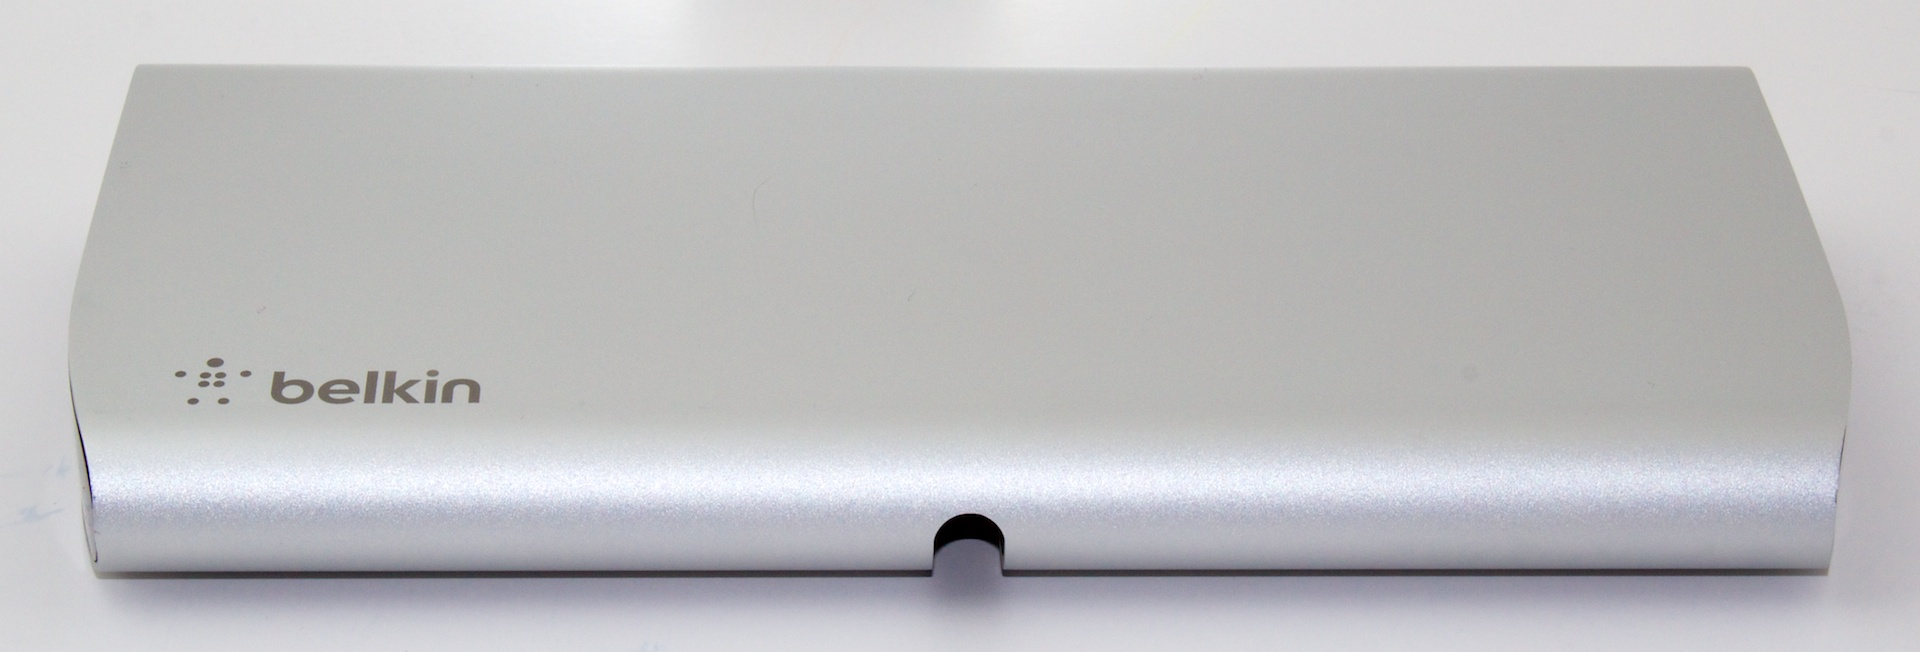 Review: Belkin's $299 Thunderbolt Express Dock works well, costs lots